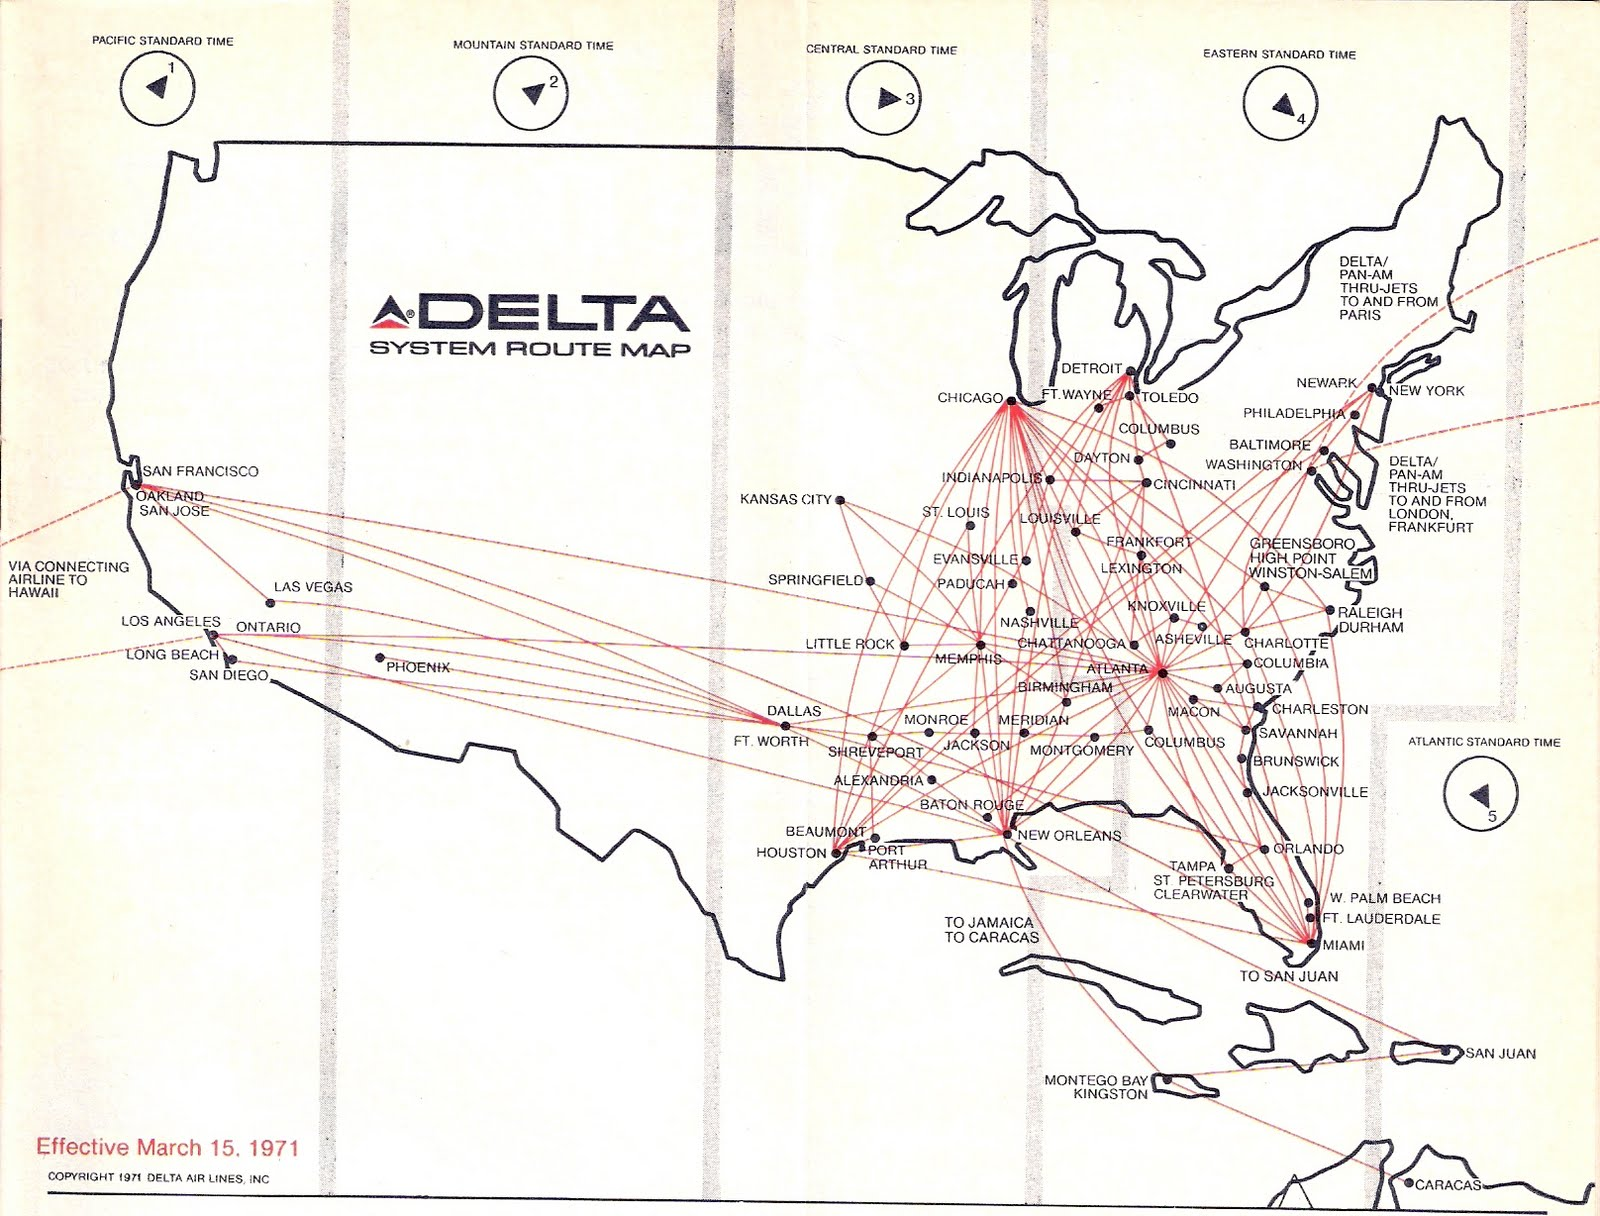 Airline Timetables: Delta Air Lines - March, 1971